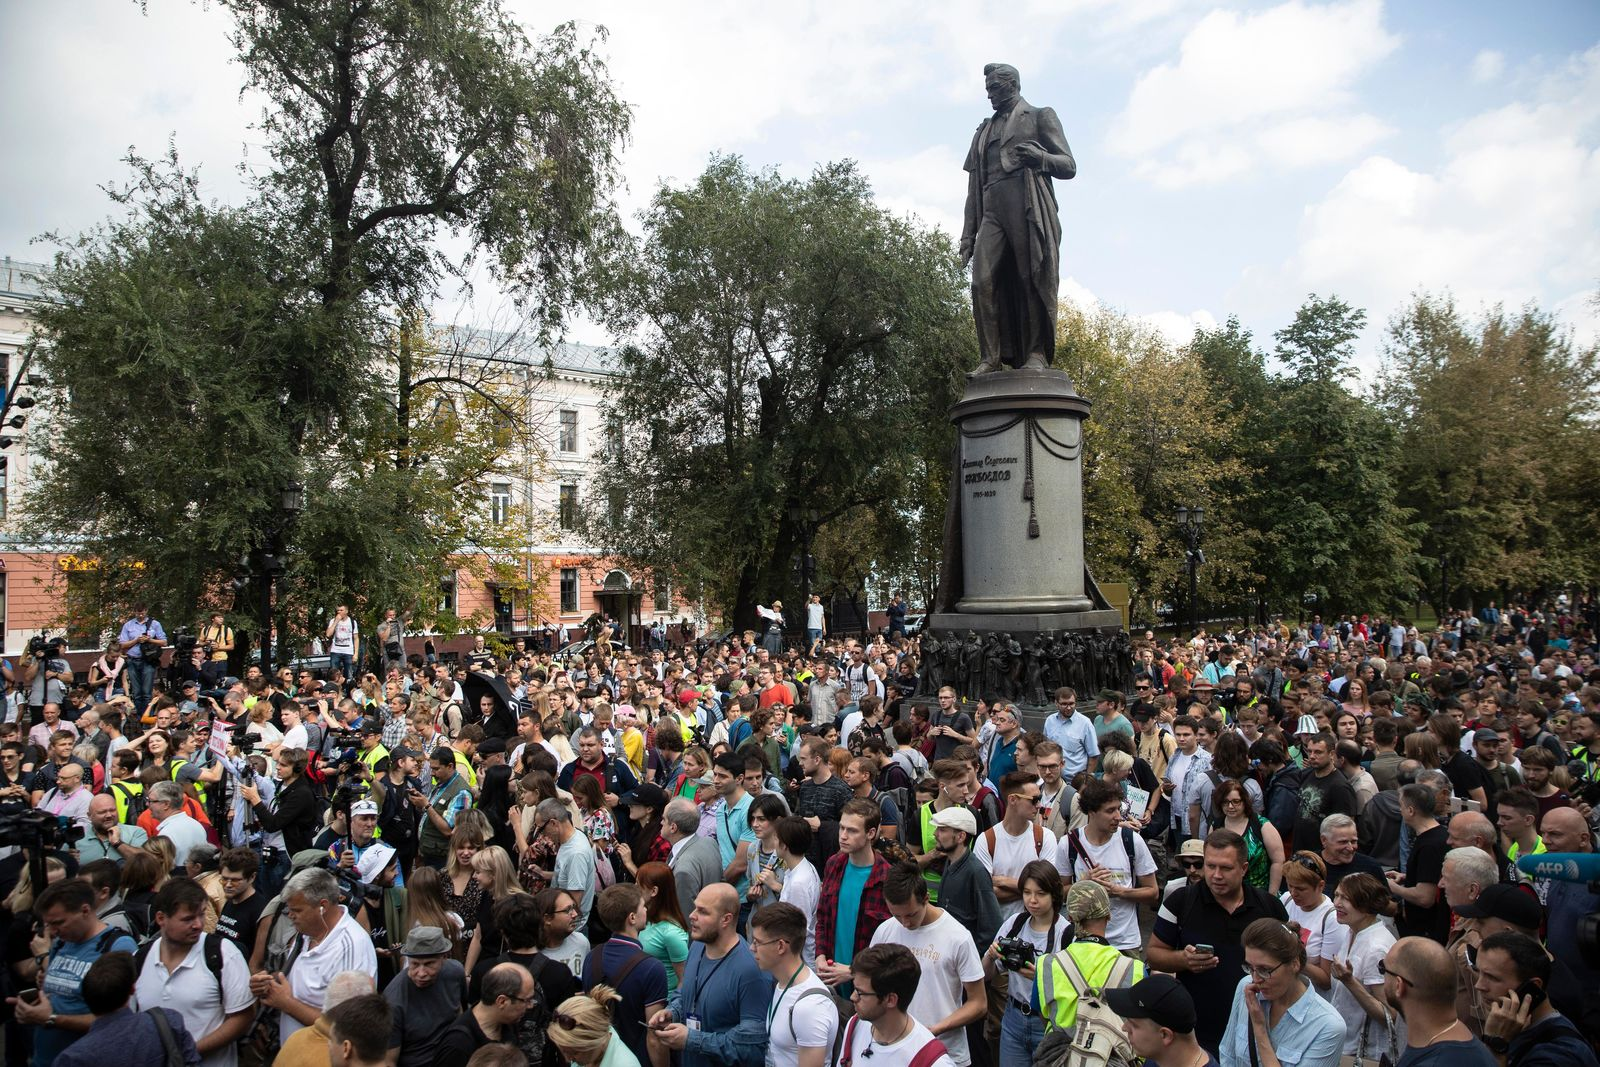 People attend a protest march in Moscow, Russia, the statue of famous Russian poet Alexander Griboyedov in the background, Saturday, Aug. 31, 2019. (AP Photo/Pavel Golovkin)